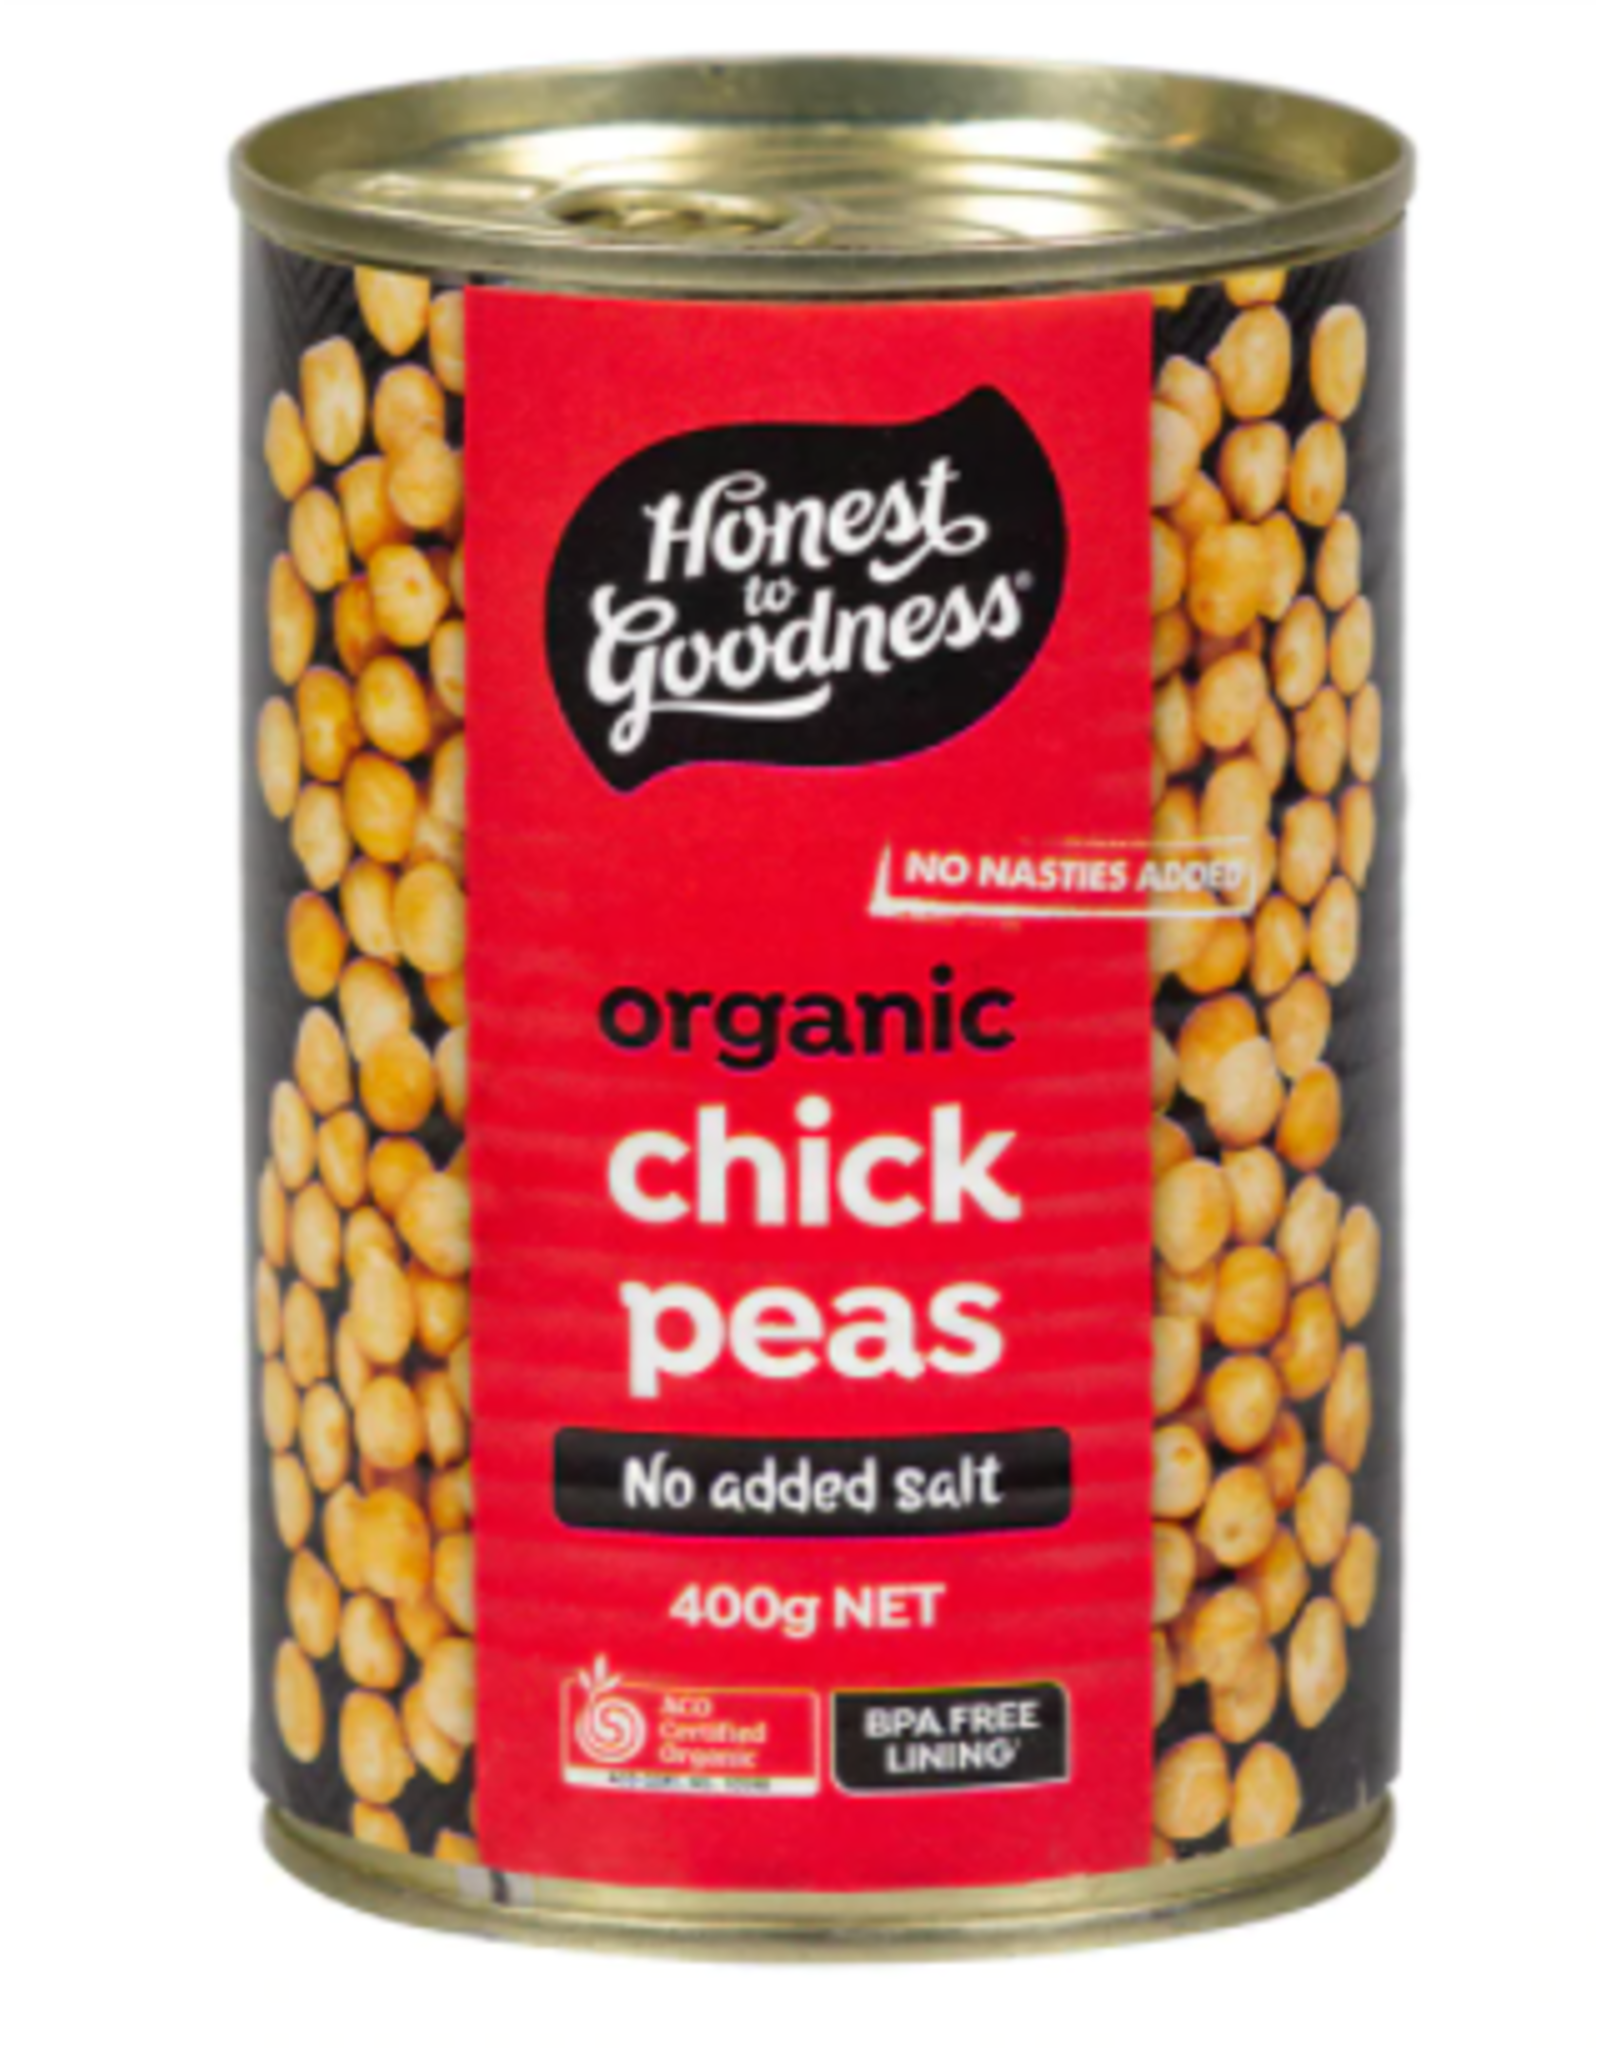 Honest To Goodness Canned Chick Peas - 400g